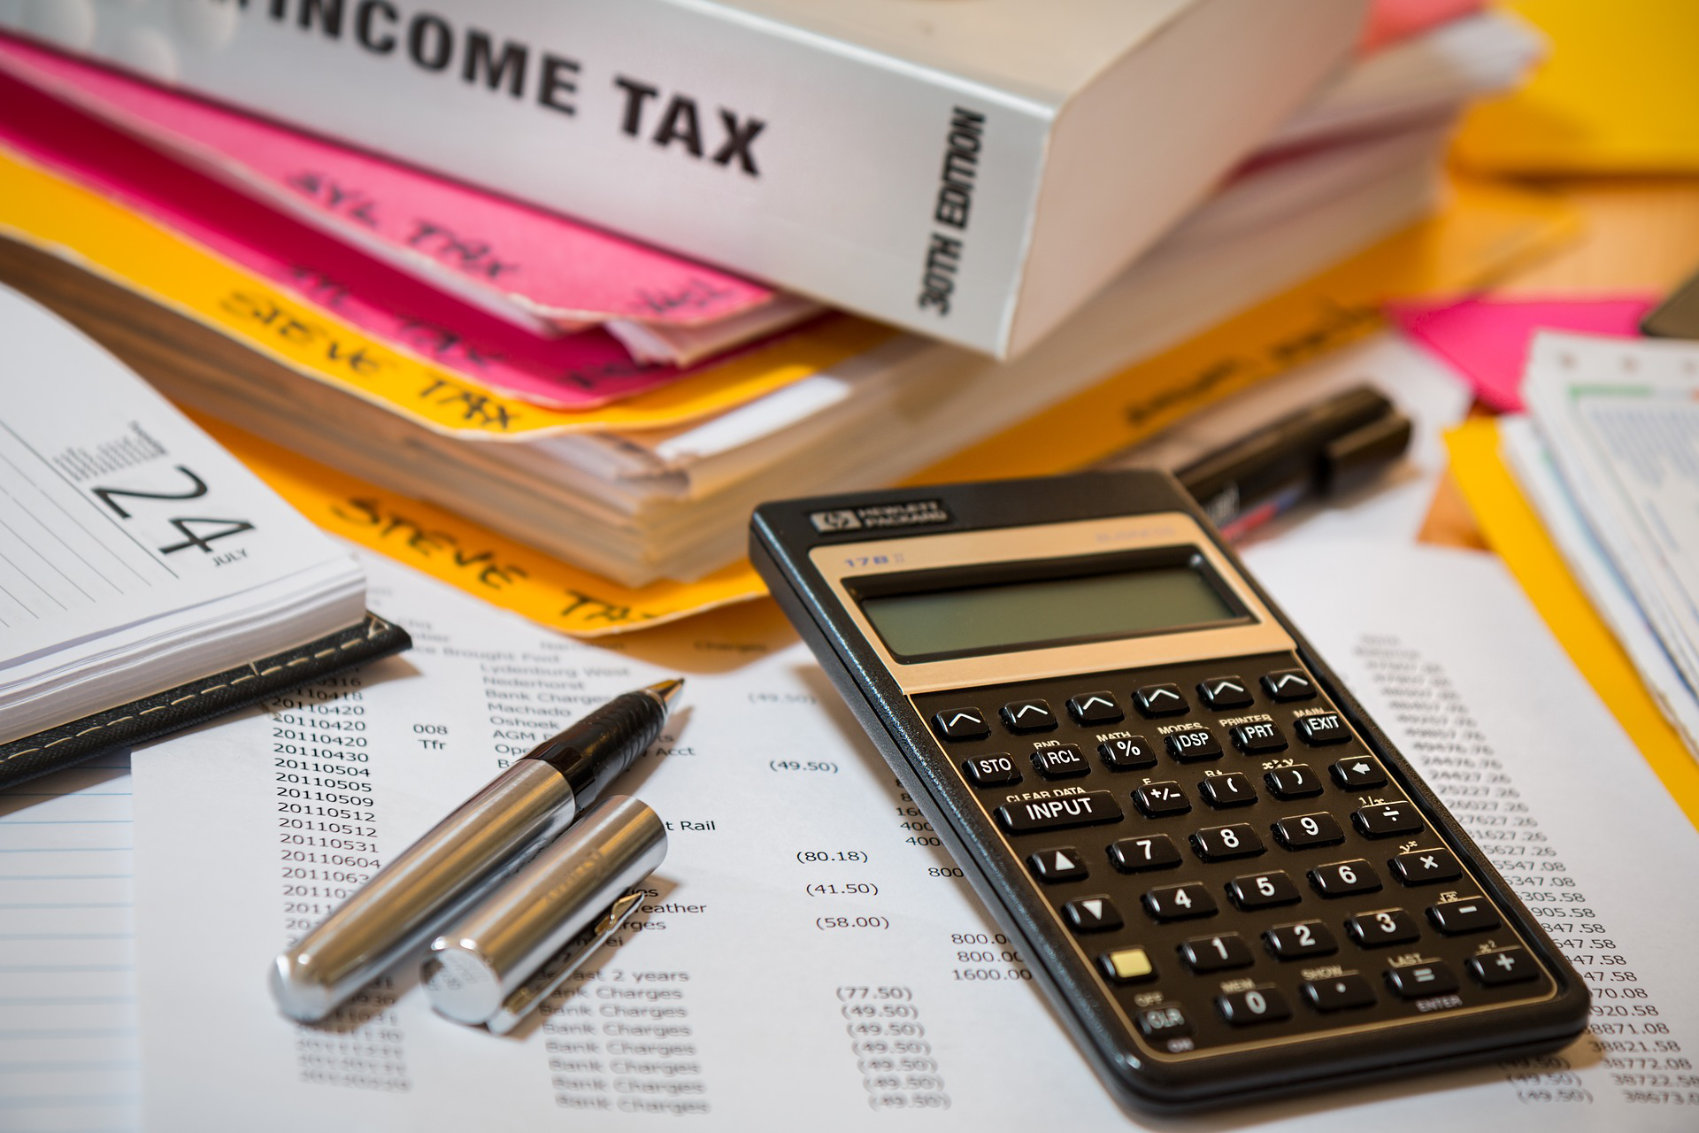 Income Tax Calculator - Image by Steve Buissinne